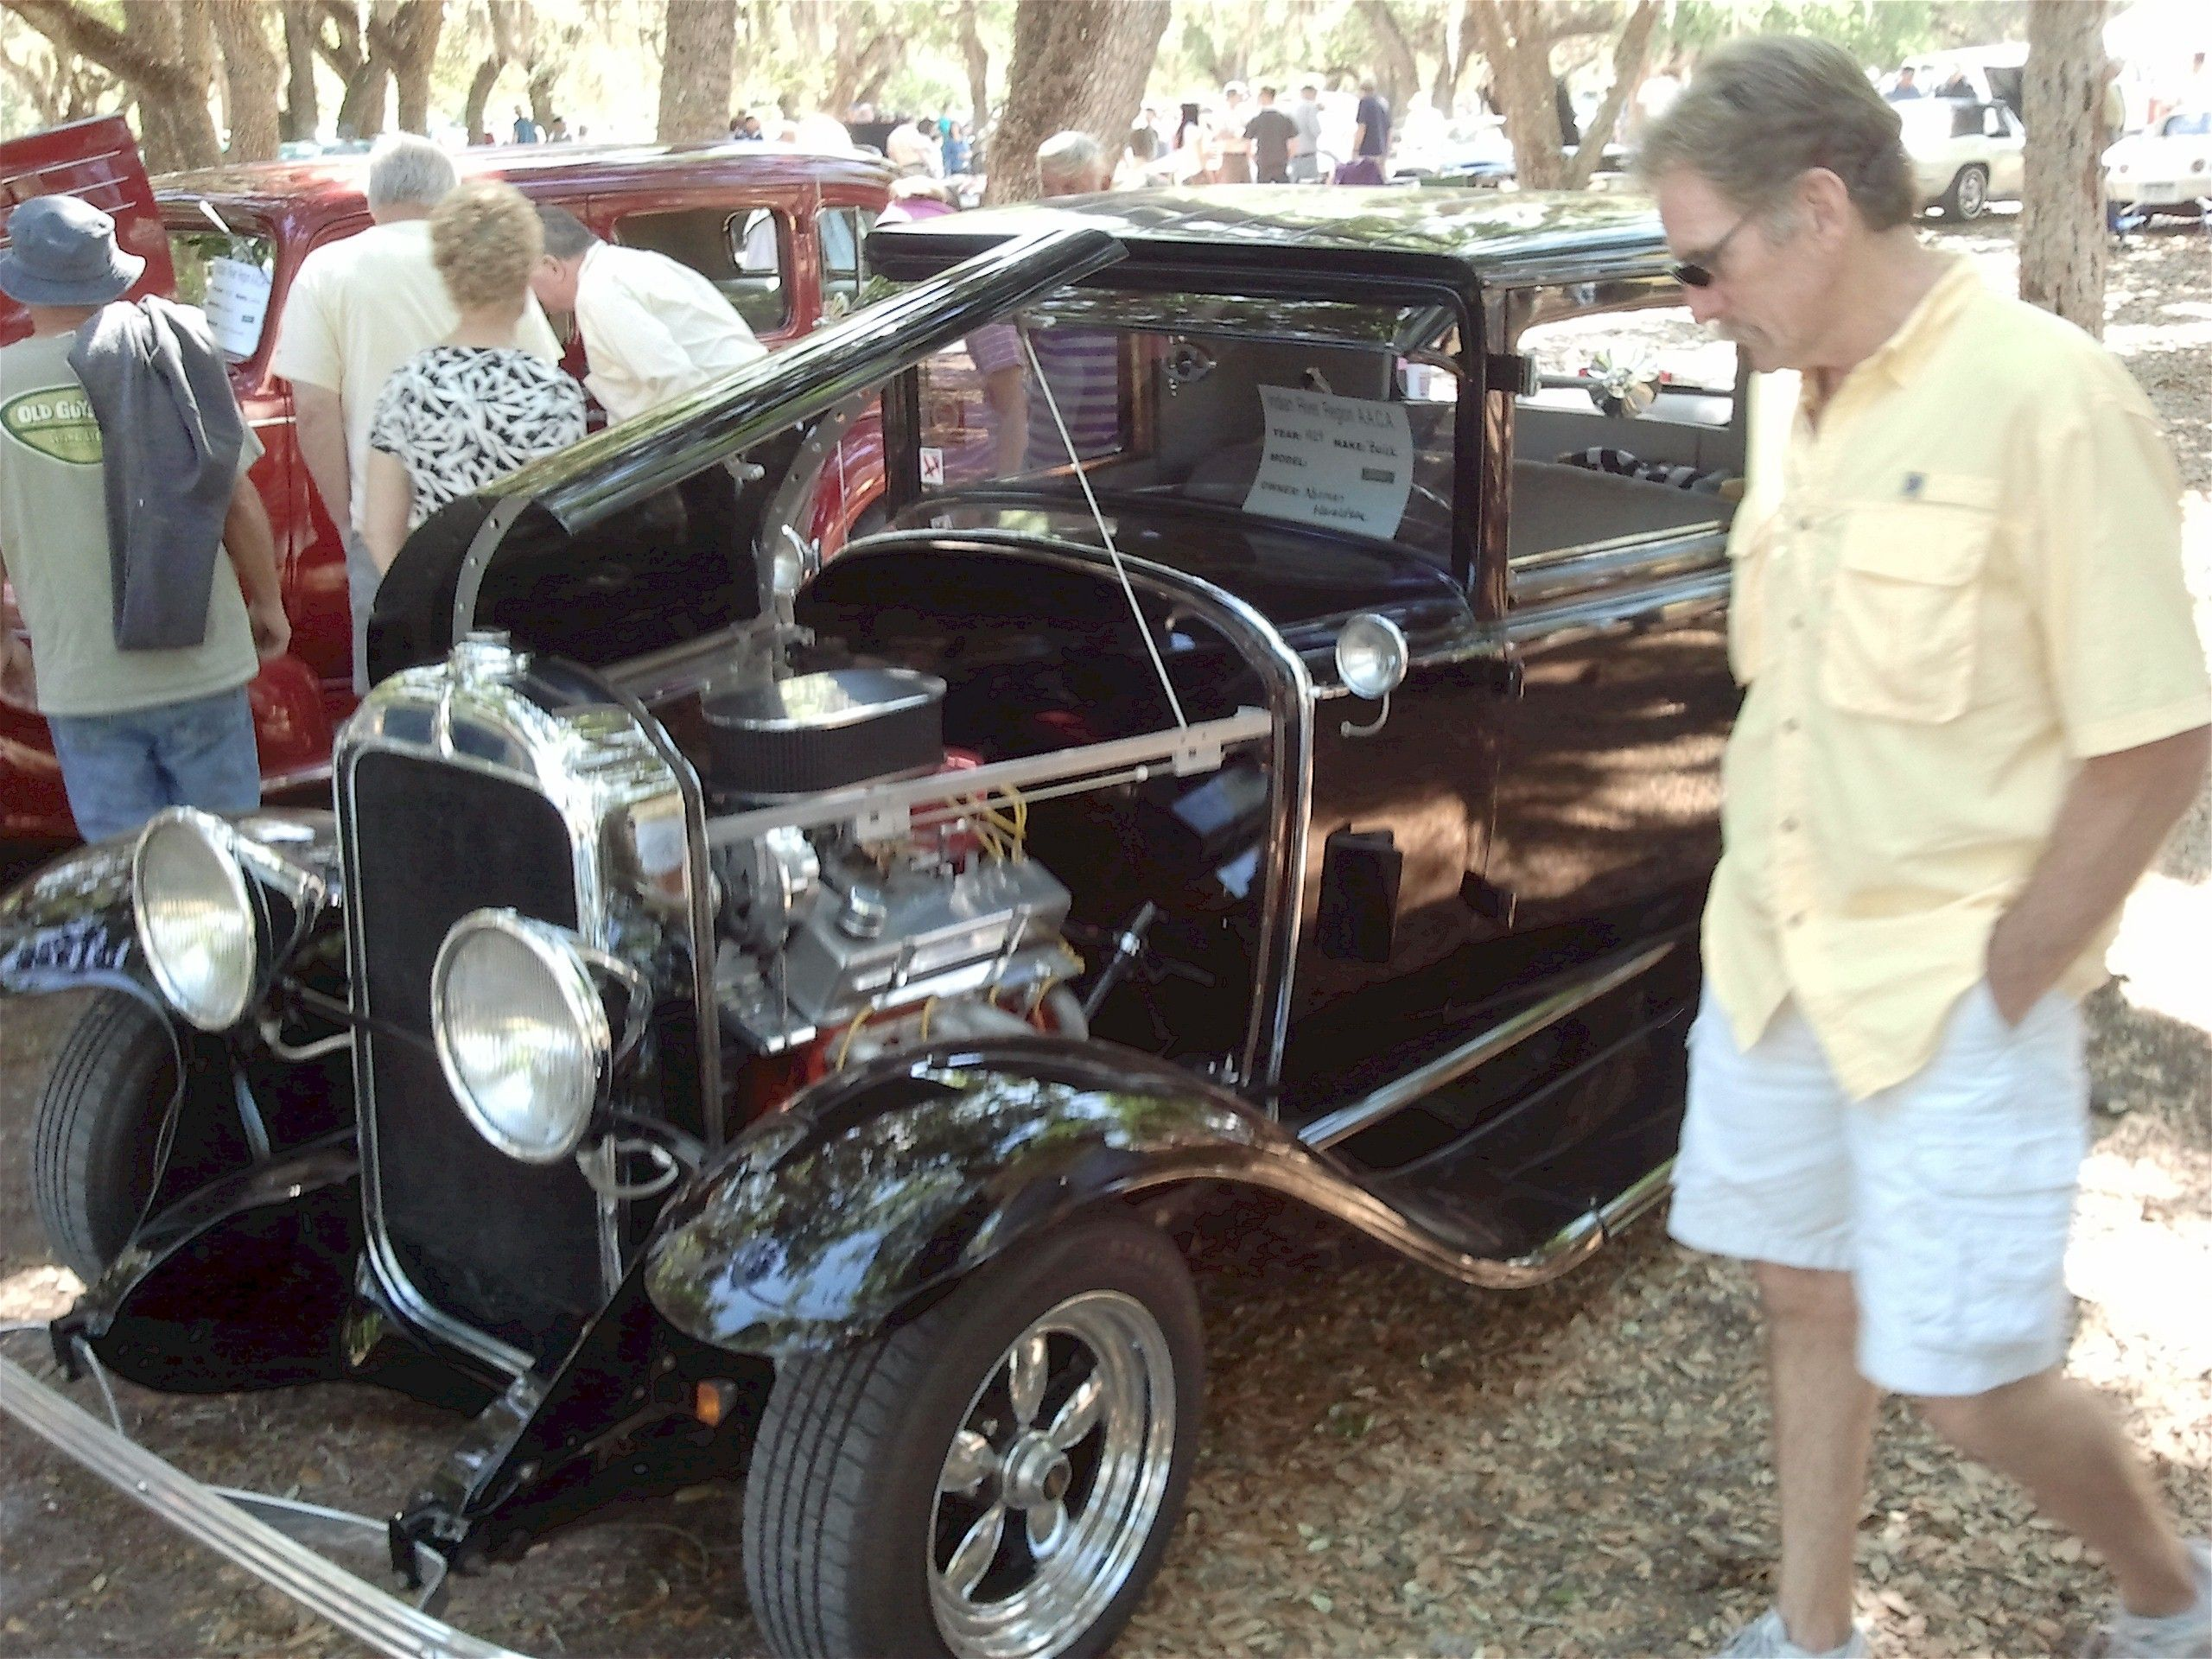 Buick Hot Rod Vero Beach Car Show Pinterest Vero - Vero beach car show